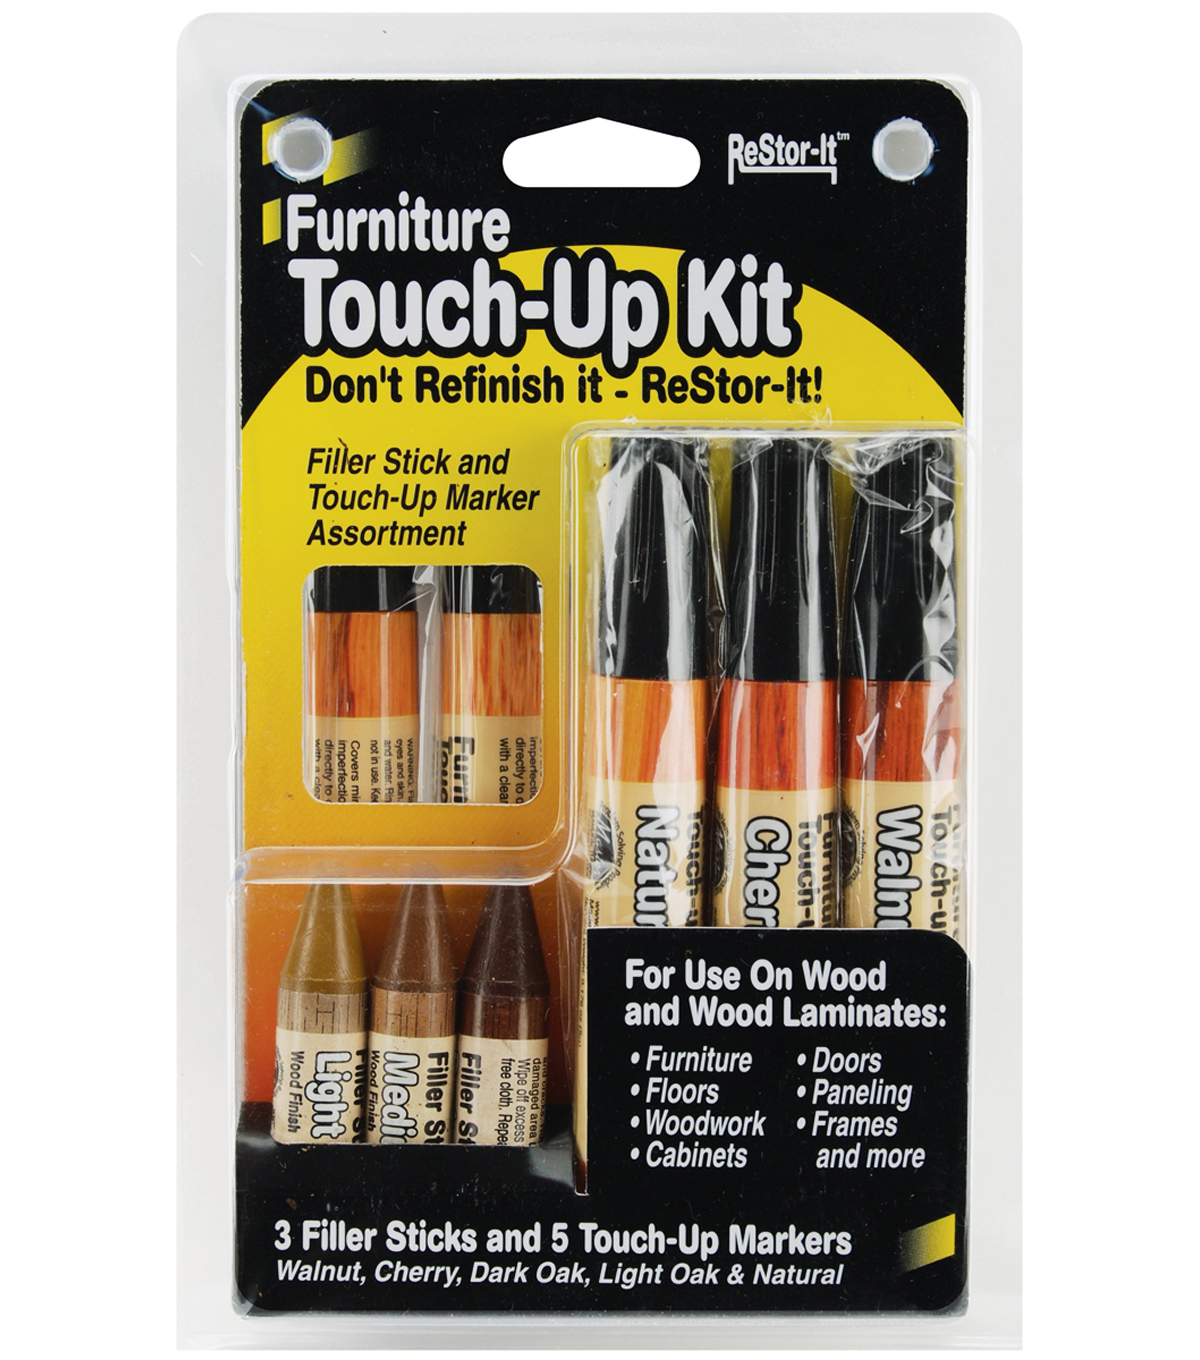 Furniture Touch-Up Kit